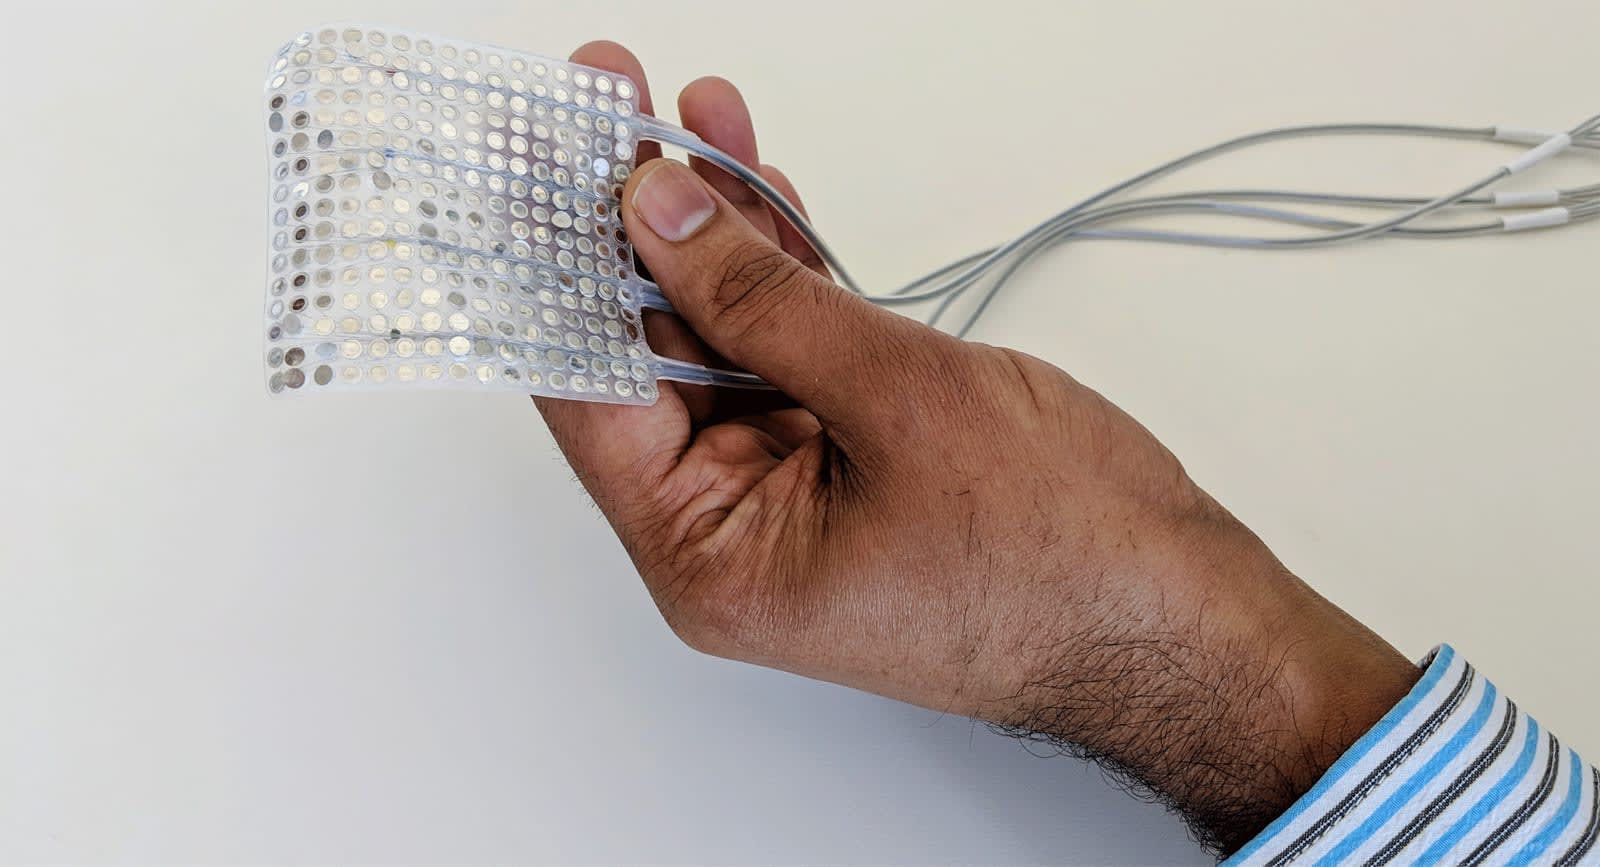 Implant turns brain signals into synthesized speech